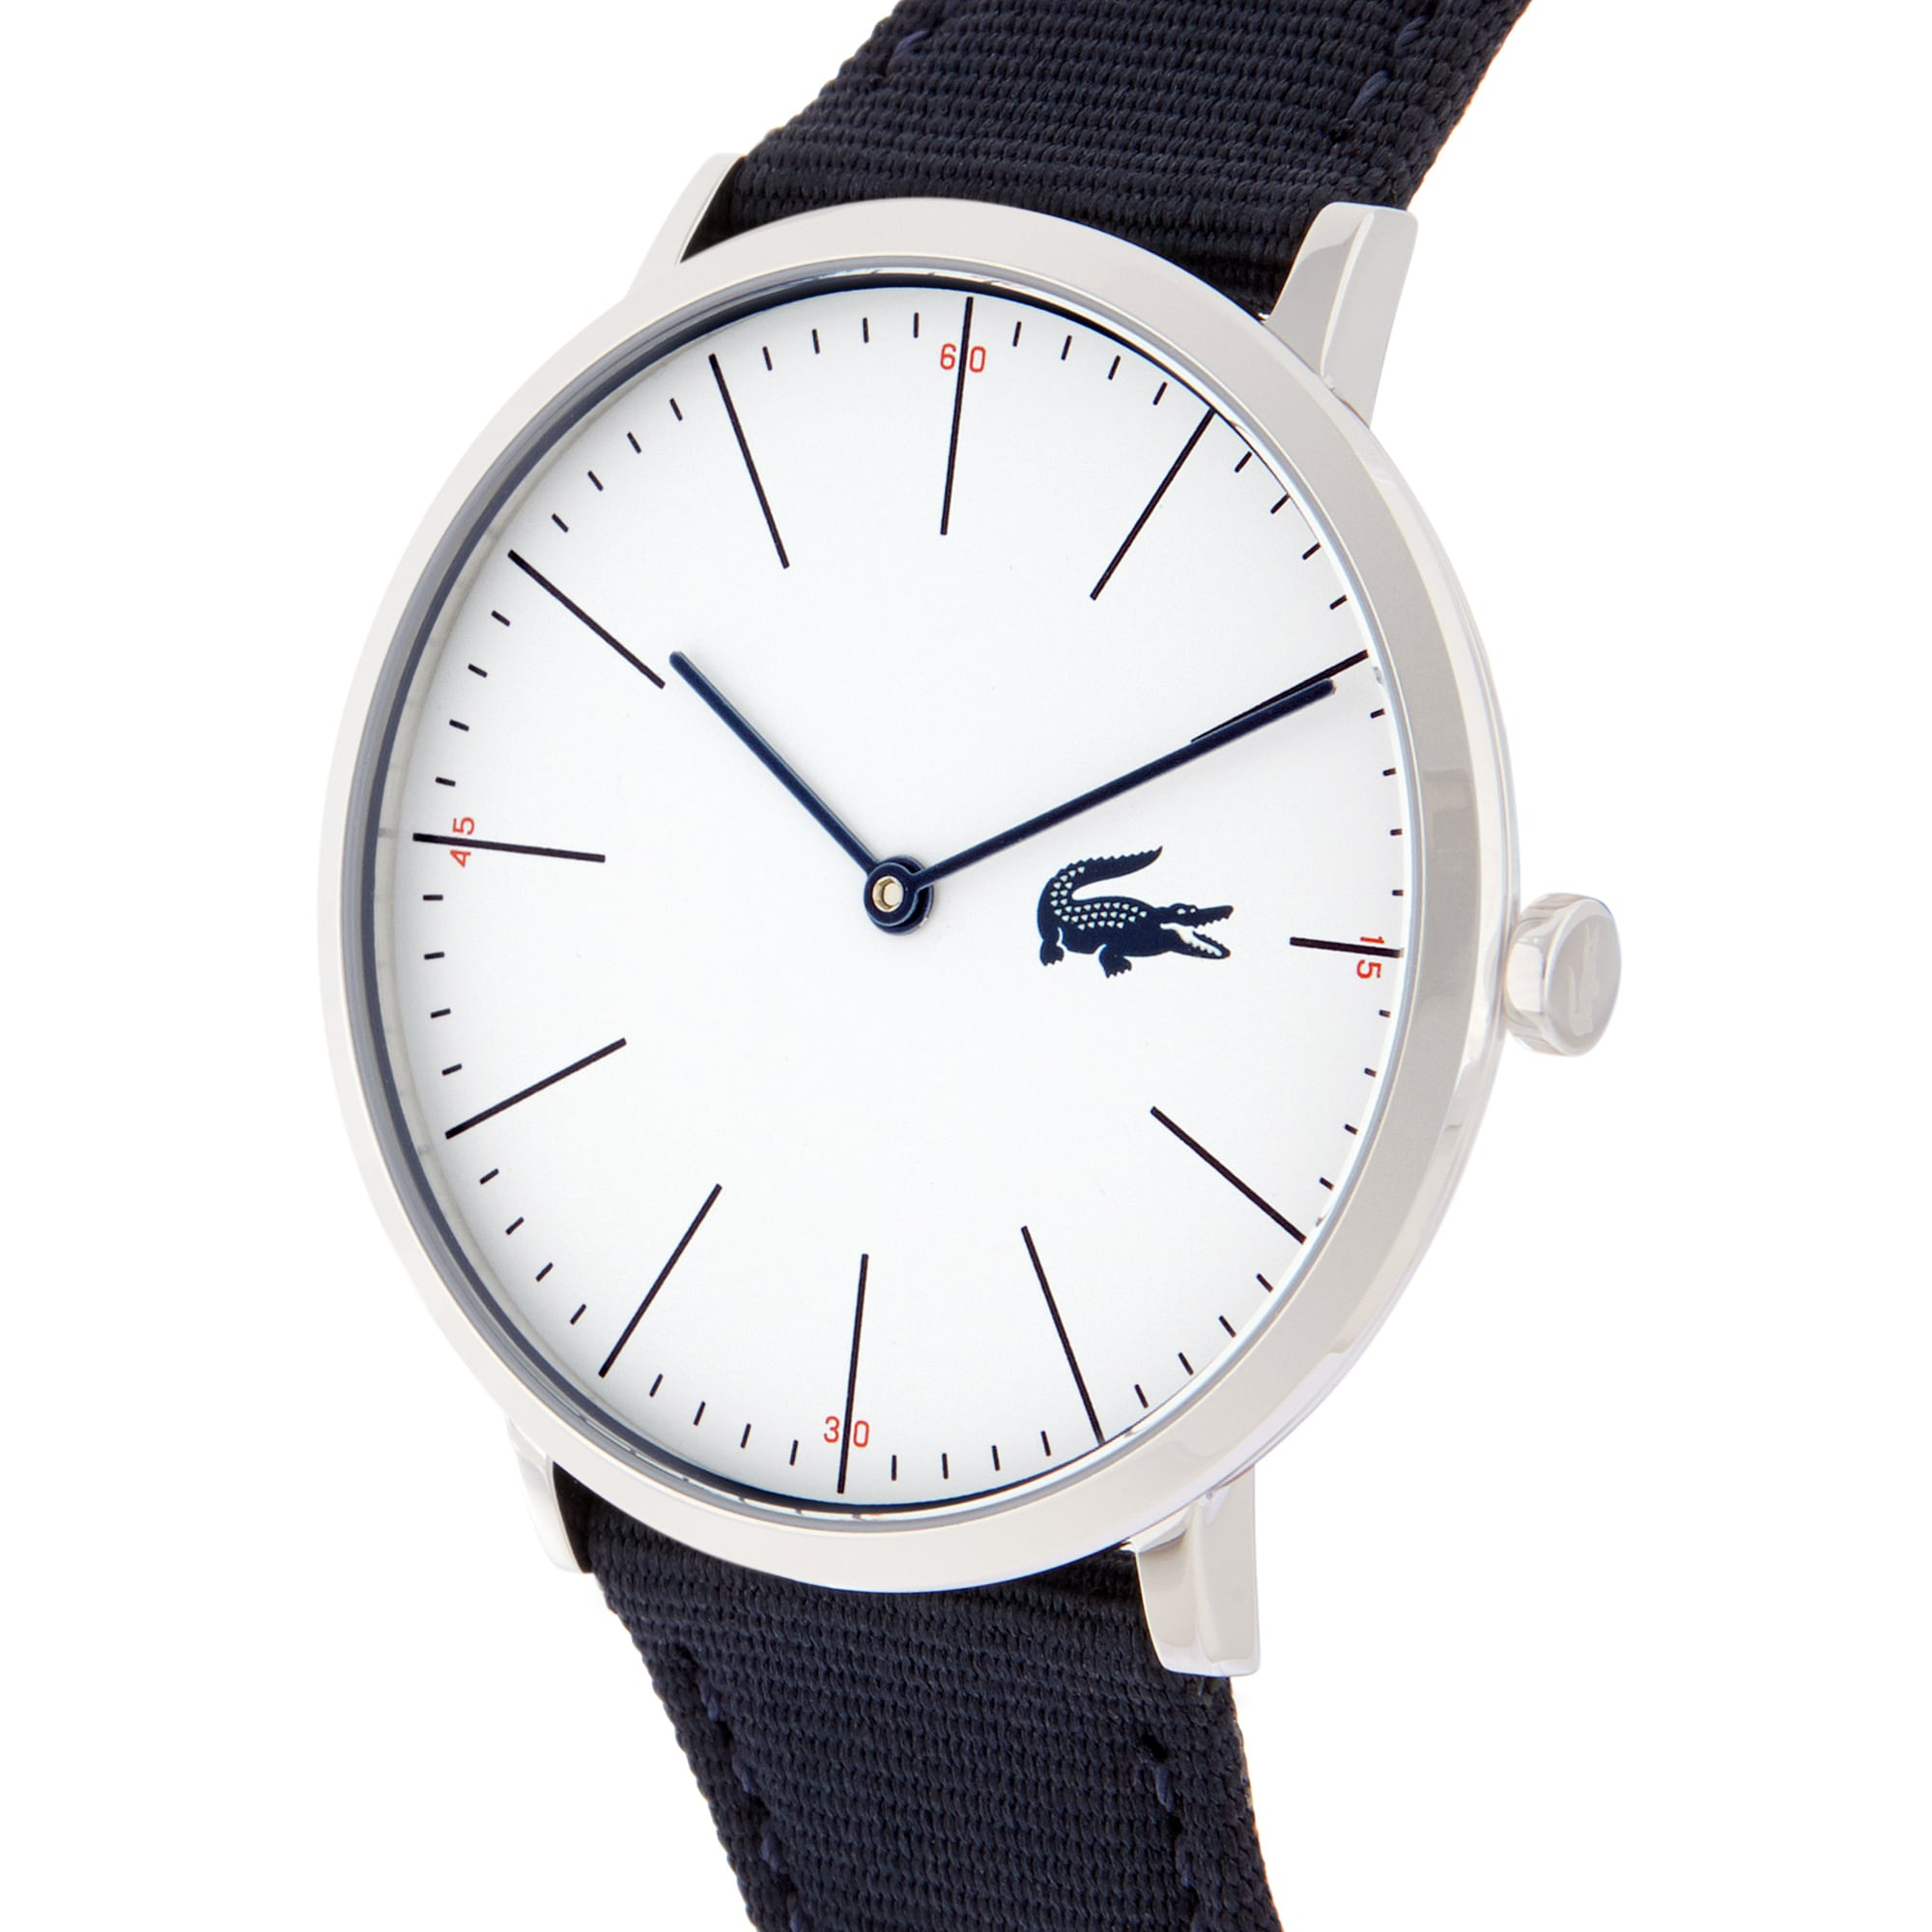 Men's Moon Watch with Blue Textile Strap